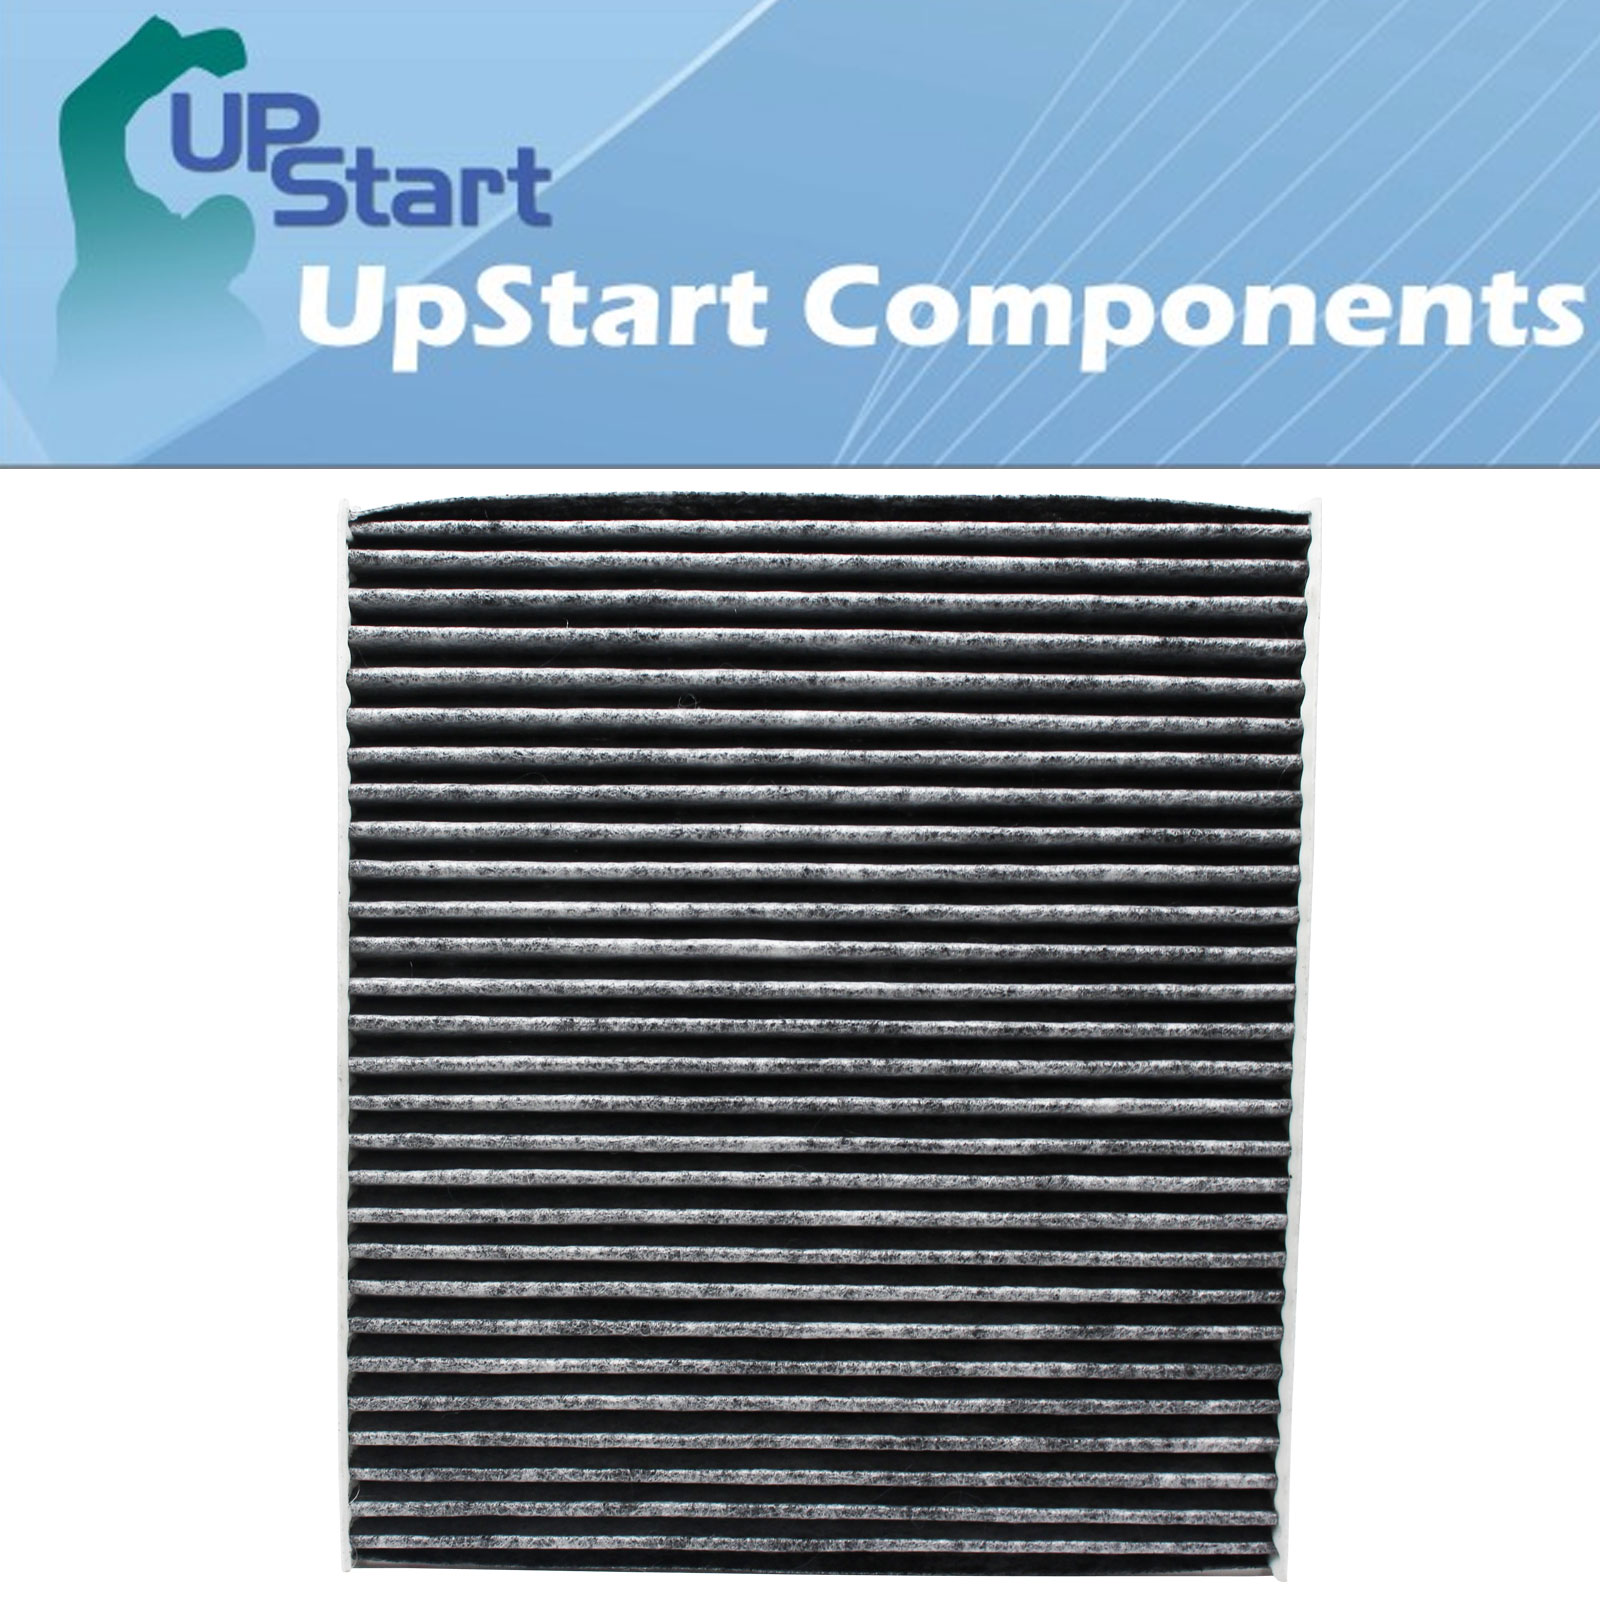 4-Pack Replacement Cabin Air Filter for KIA 97133-2E210 Car/Automotive - Activated Carbon, ACF-10709 - image 3 of 4